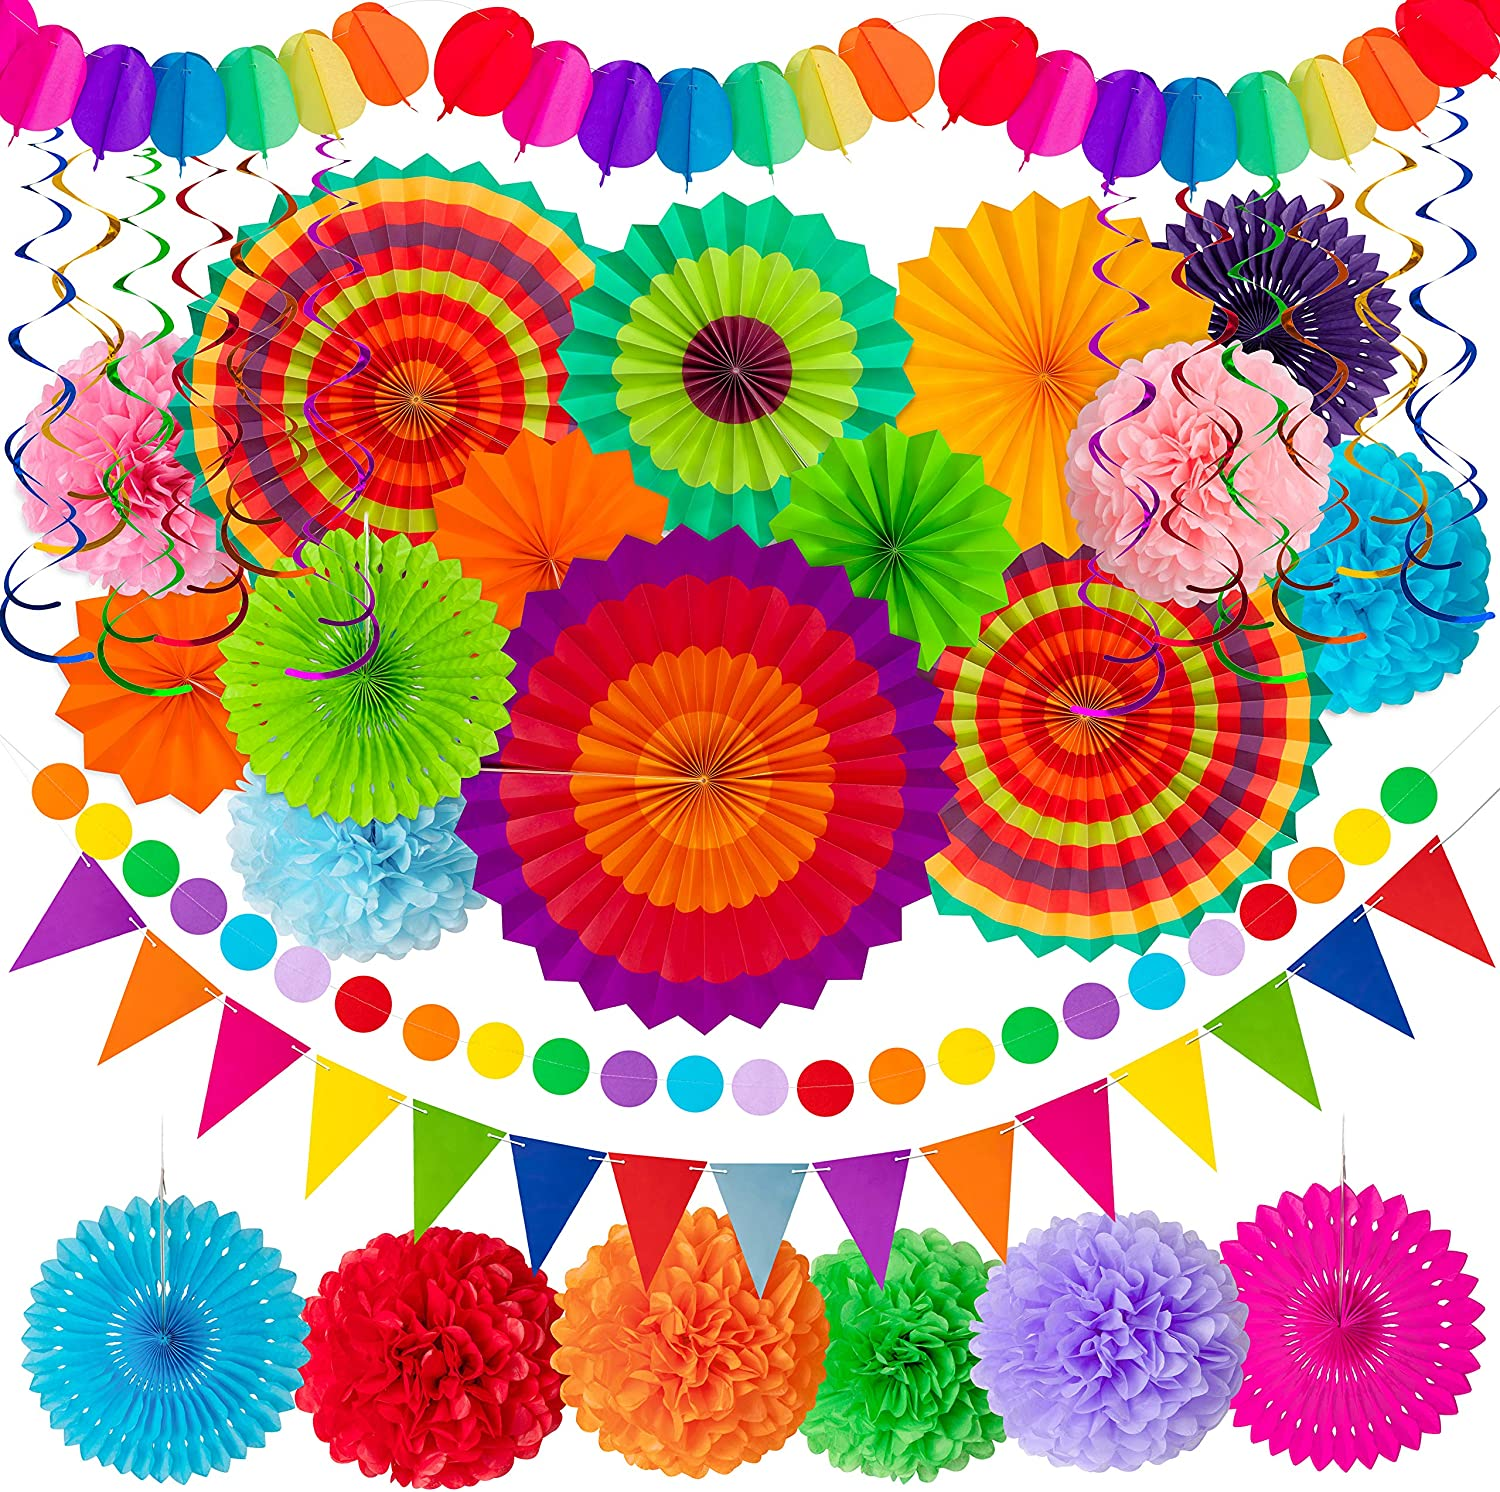 Moon Boat 35PCS Fiesta Paper Fan Party Decorations Set - Cinco De Mayo Pom Poms,Pennant,Garland String,Banner,Hanging Swirls Decor Supplies: Toys & Games